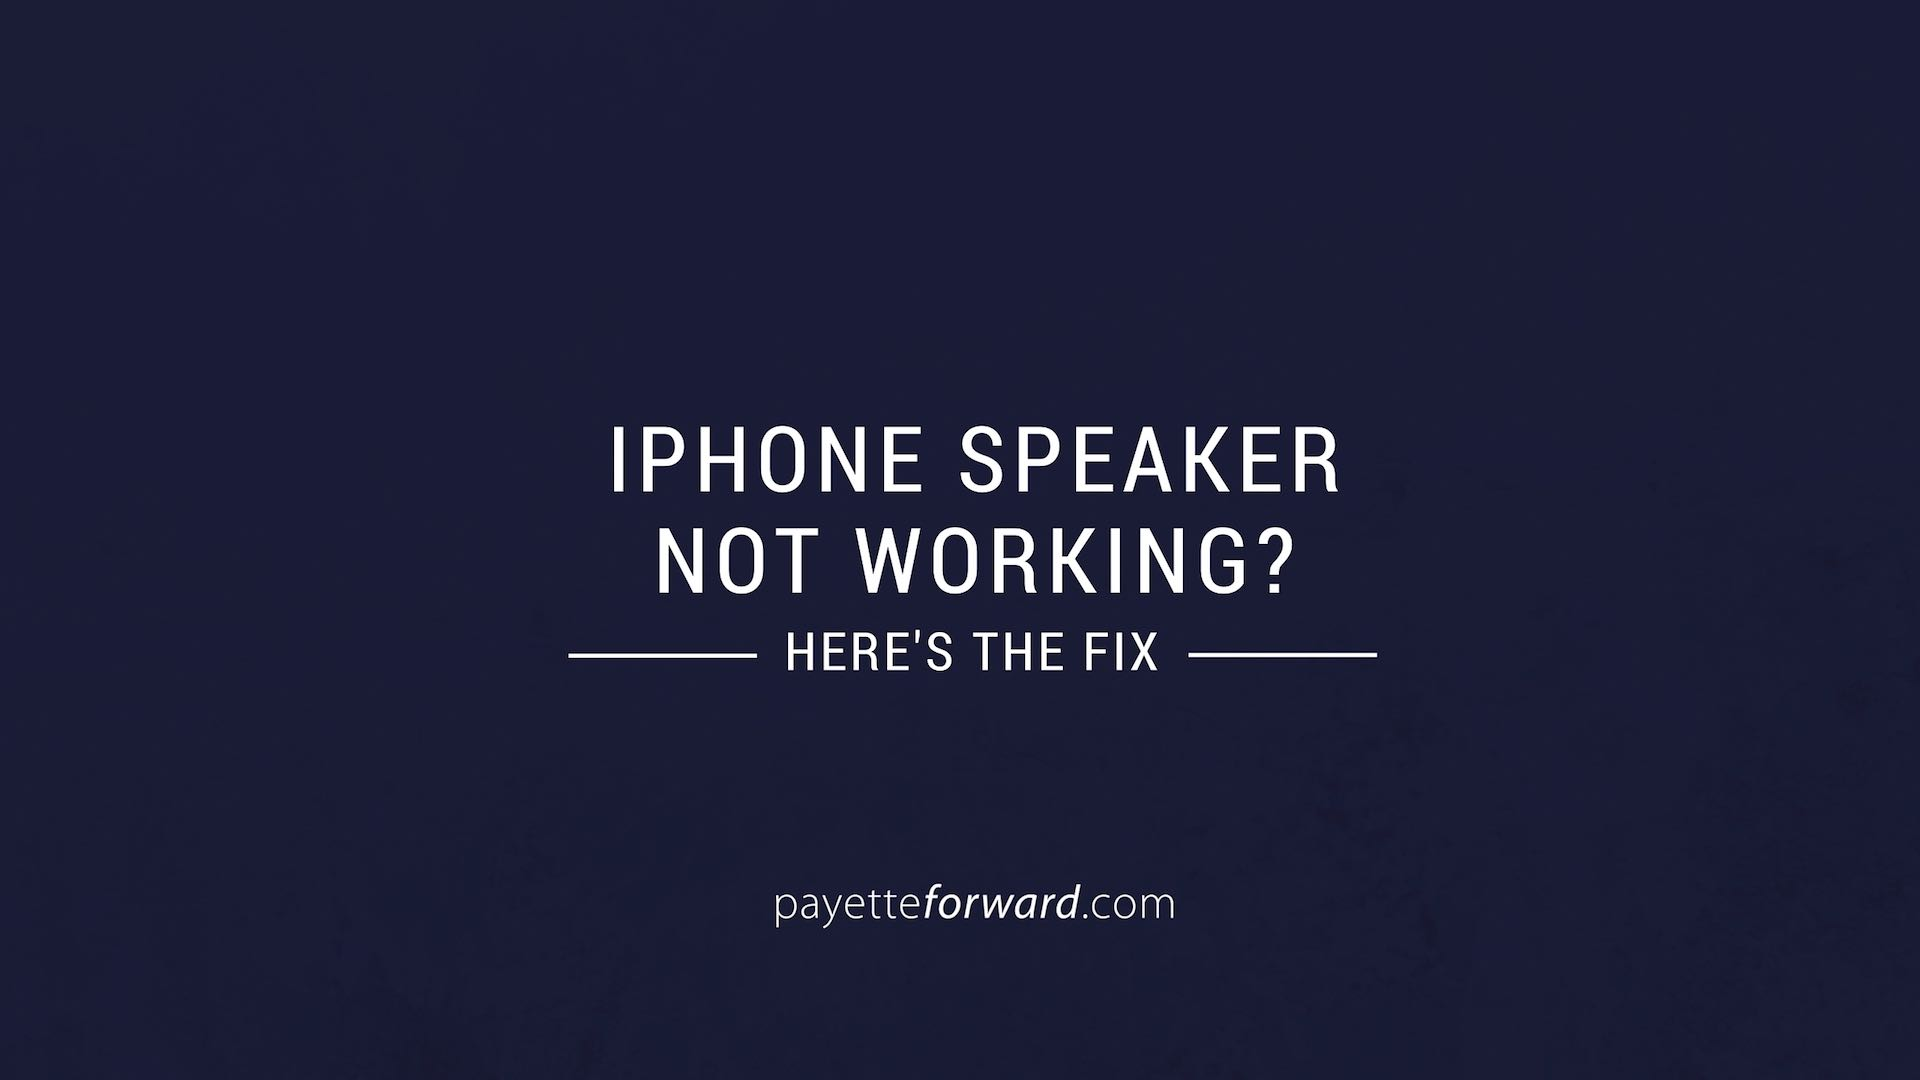 iphone speaker not working iphone speaker not working here s the real fix 15465